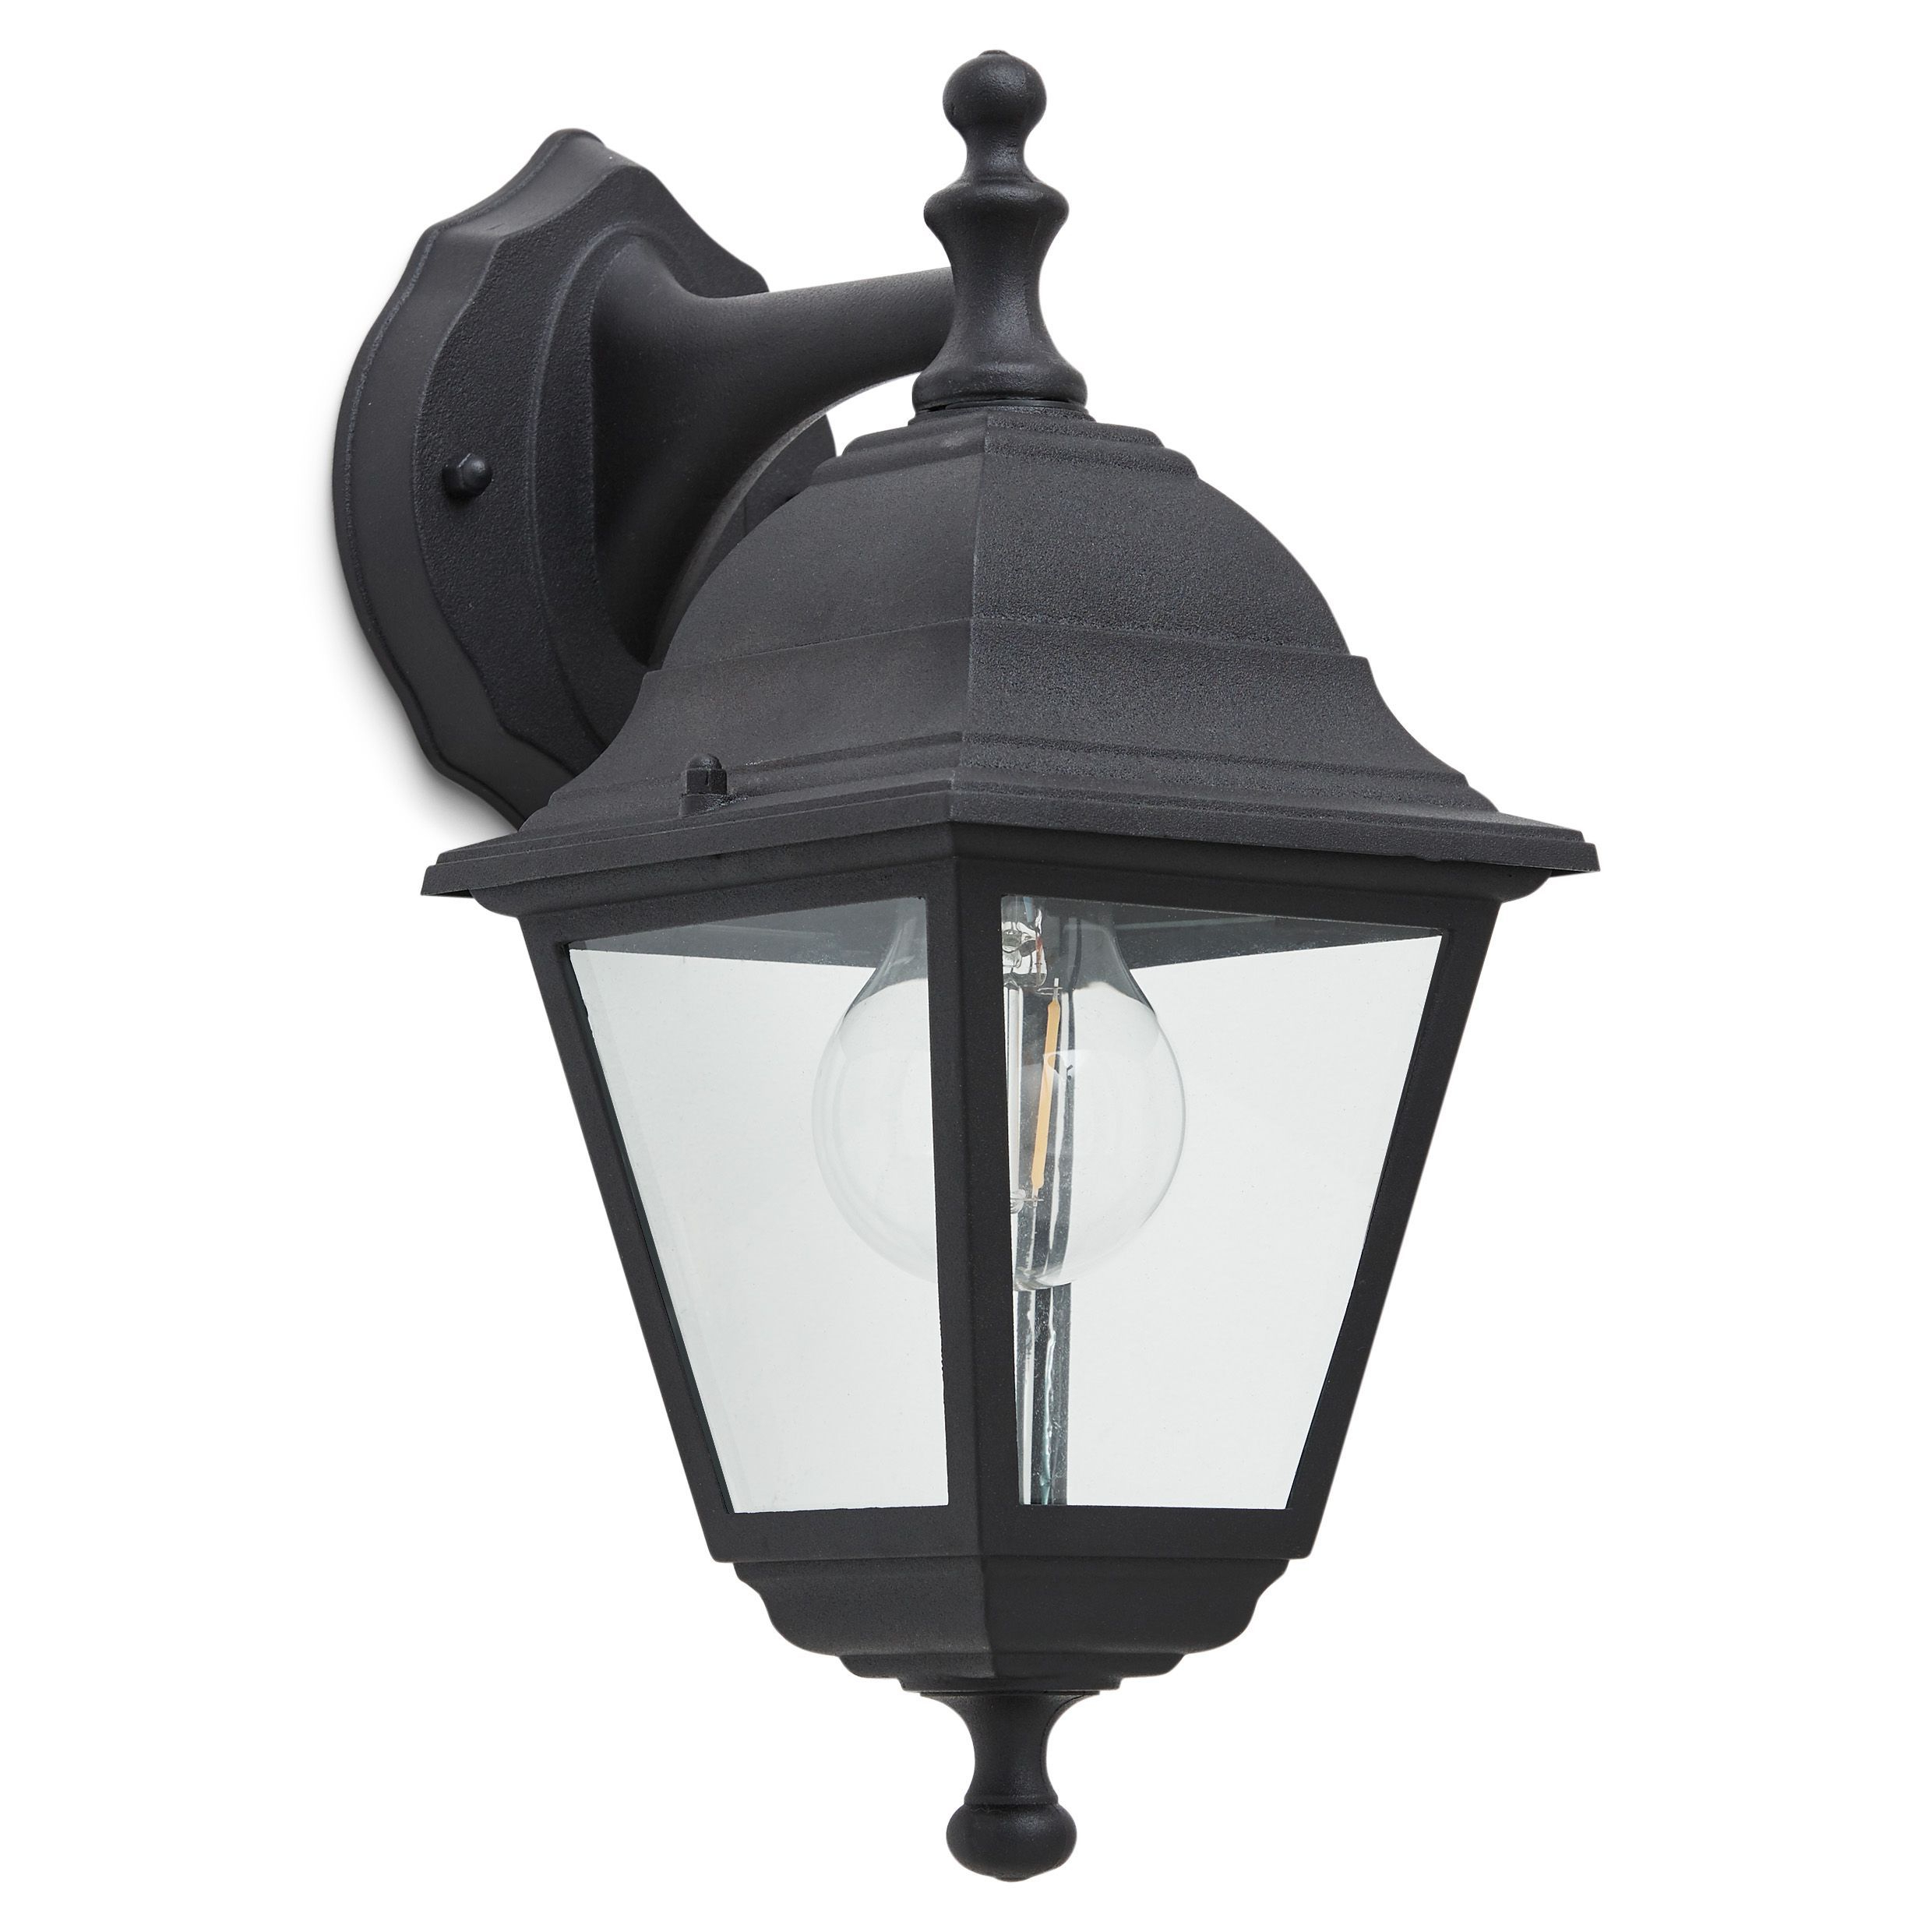 Outdoor Garden Lights B Q Pertaining To Most Up To Date Cano Wall Lanterns (View 3 of 20)